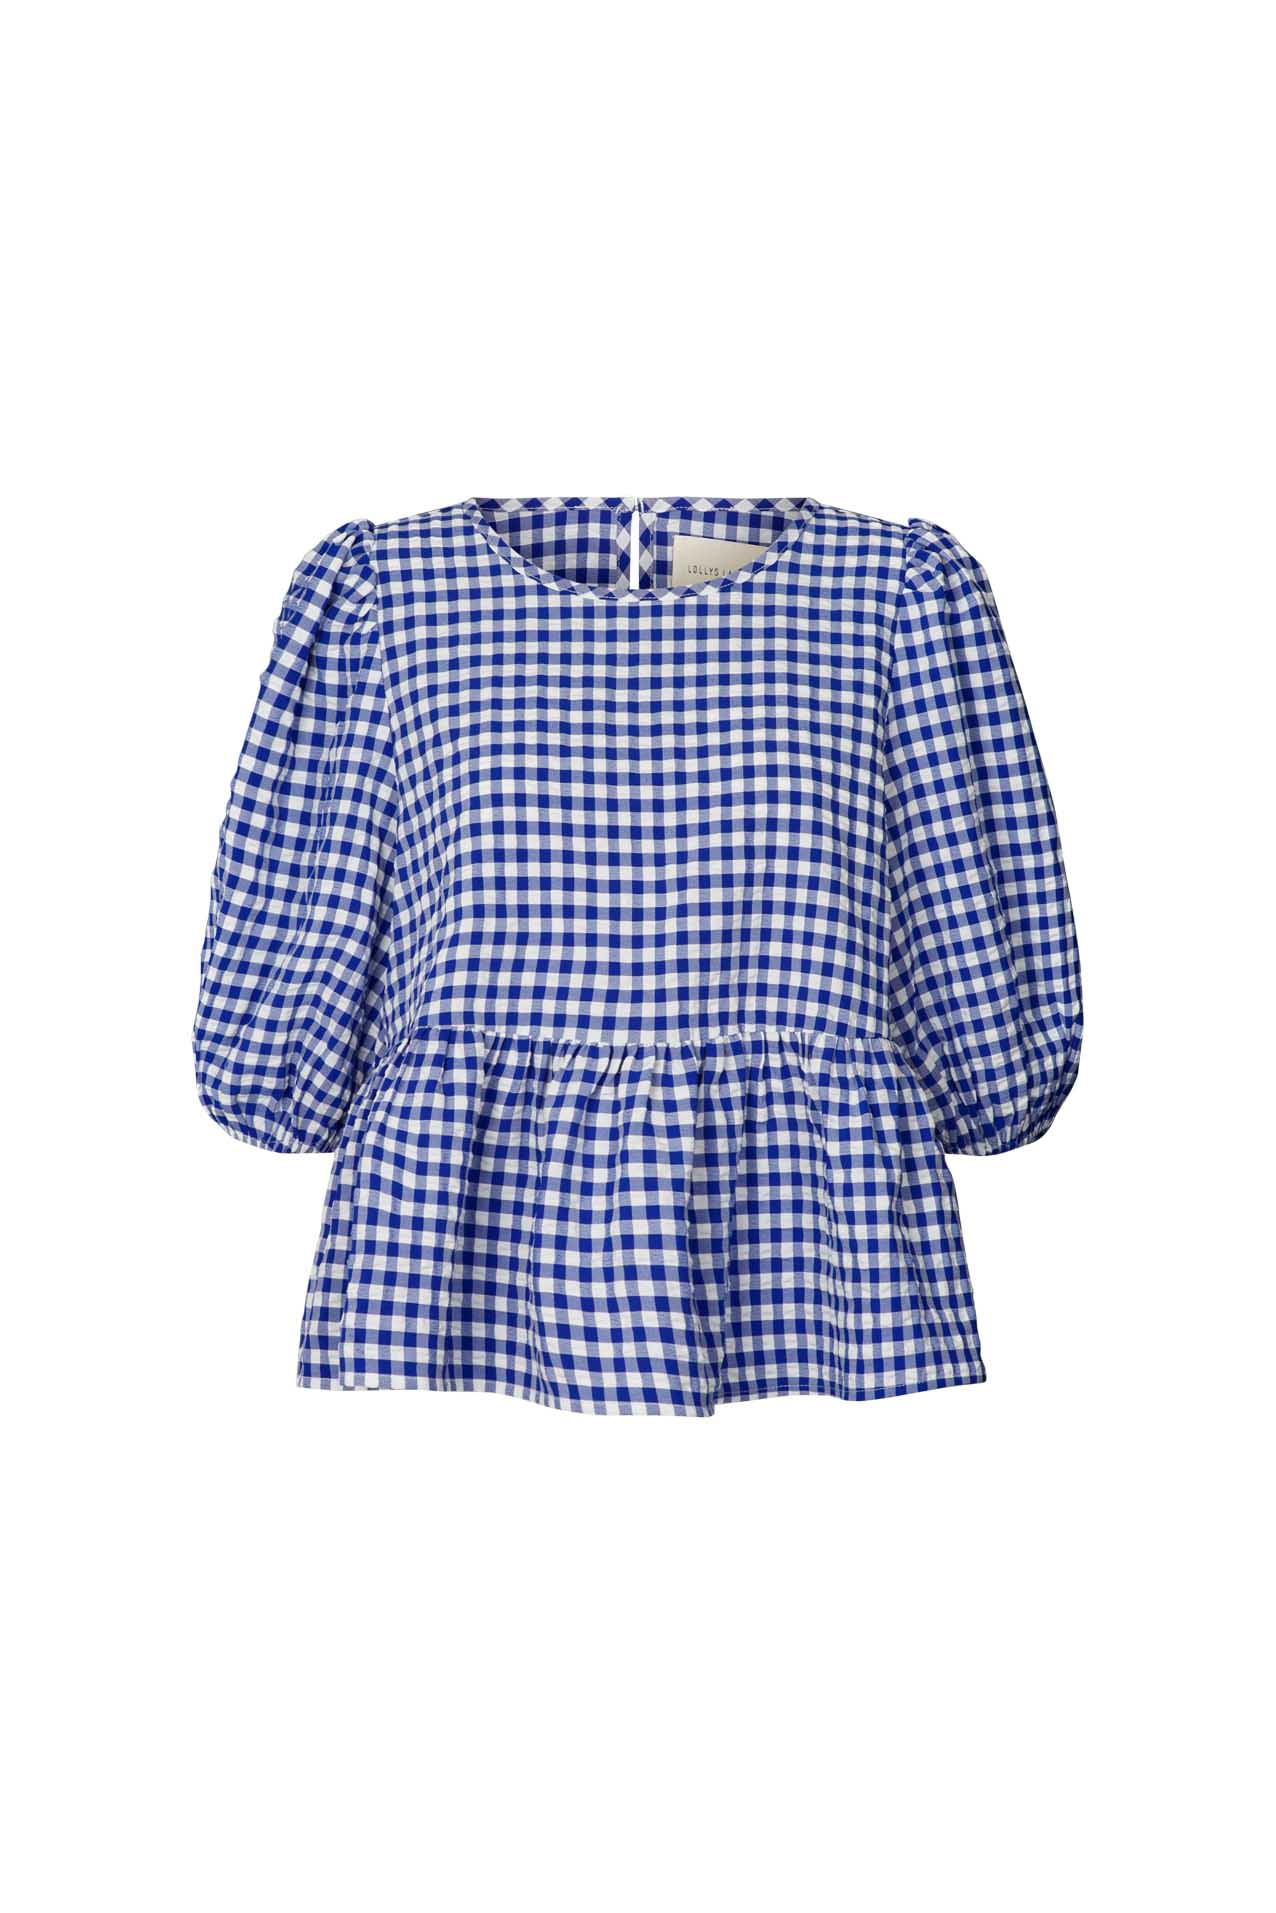 Lollys Laundry Claire bluse